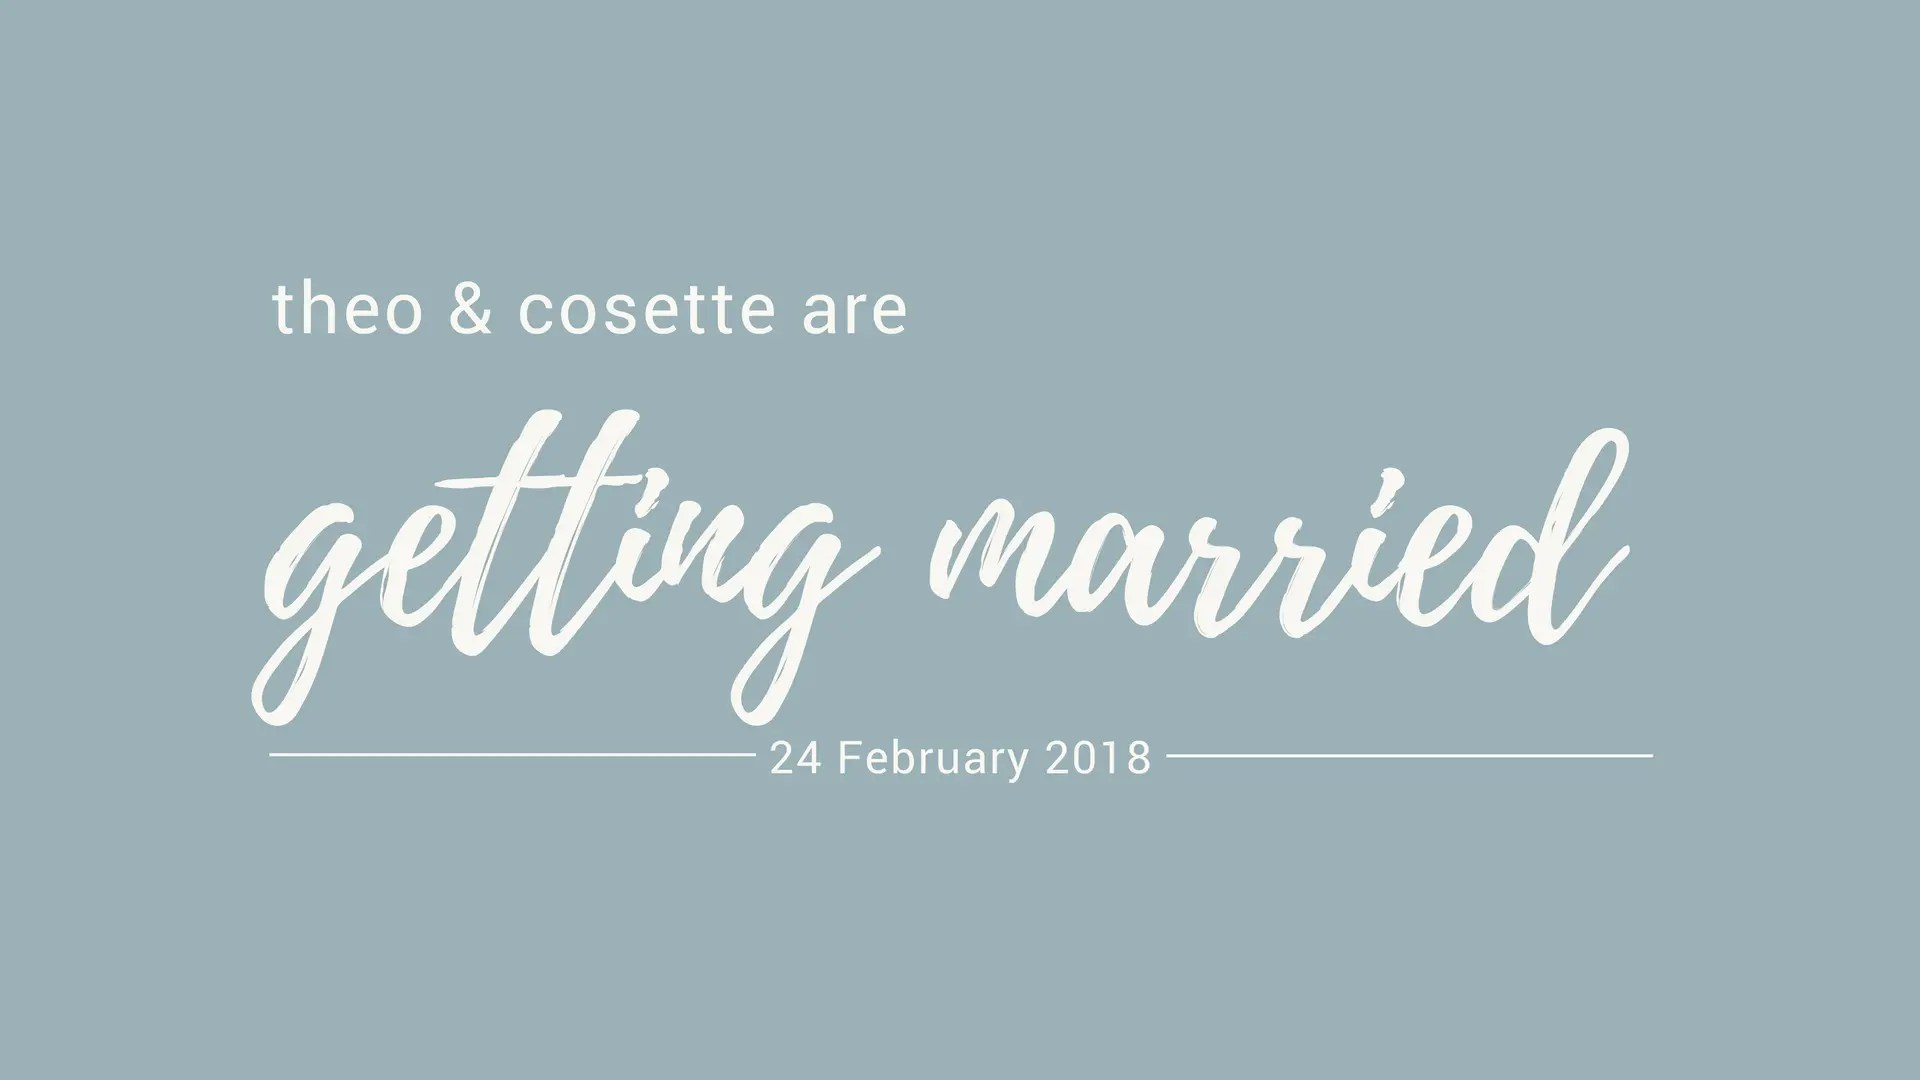 Getting married page header.